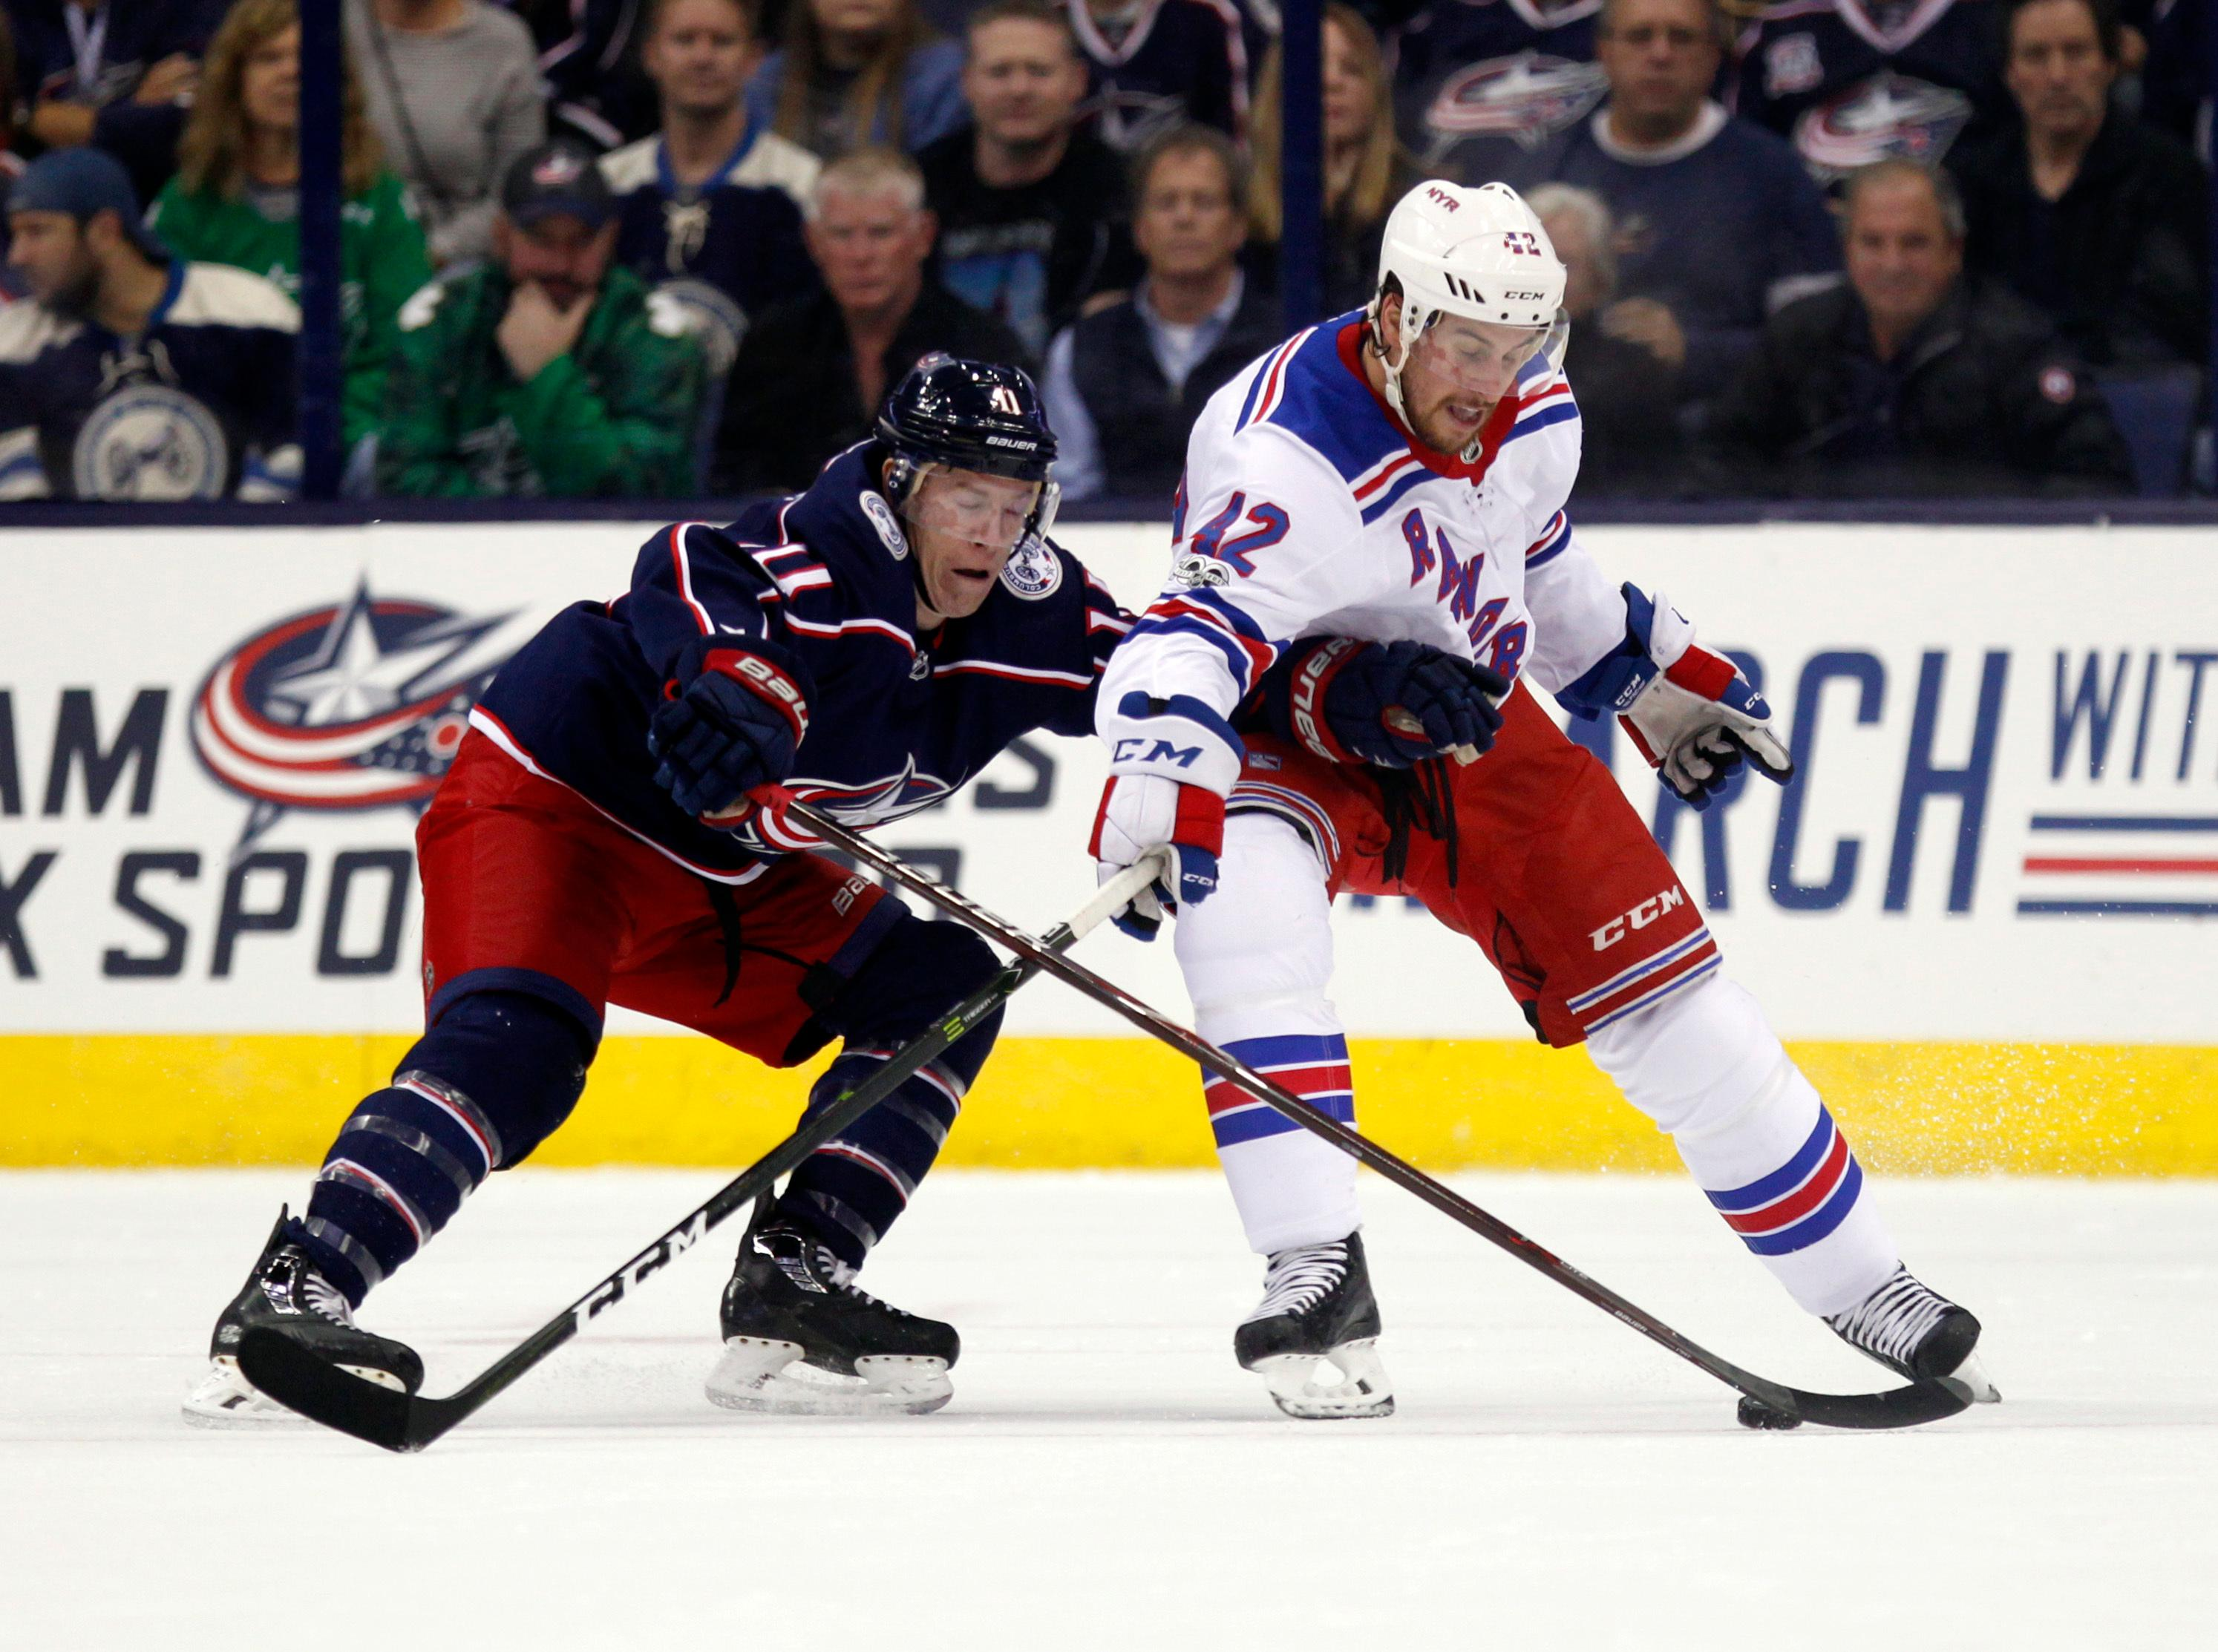 Columbus Blue Jackets forward Matt Calvert, left, tries to control the puck against New York Rangers defenseman Brendan Smith during the first period of an NHL hockey game in Columbus, Ohio, Friday, Oct. 13, 2017. (AP Photo/Paul Vernon)